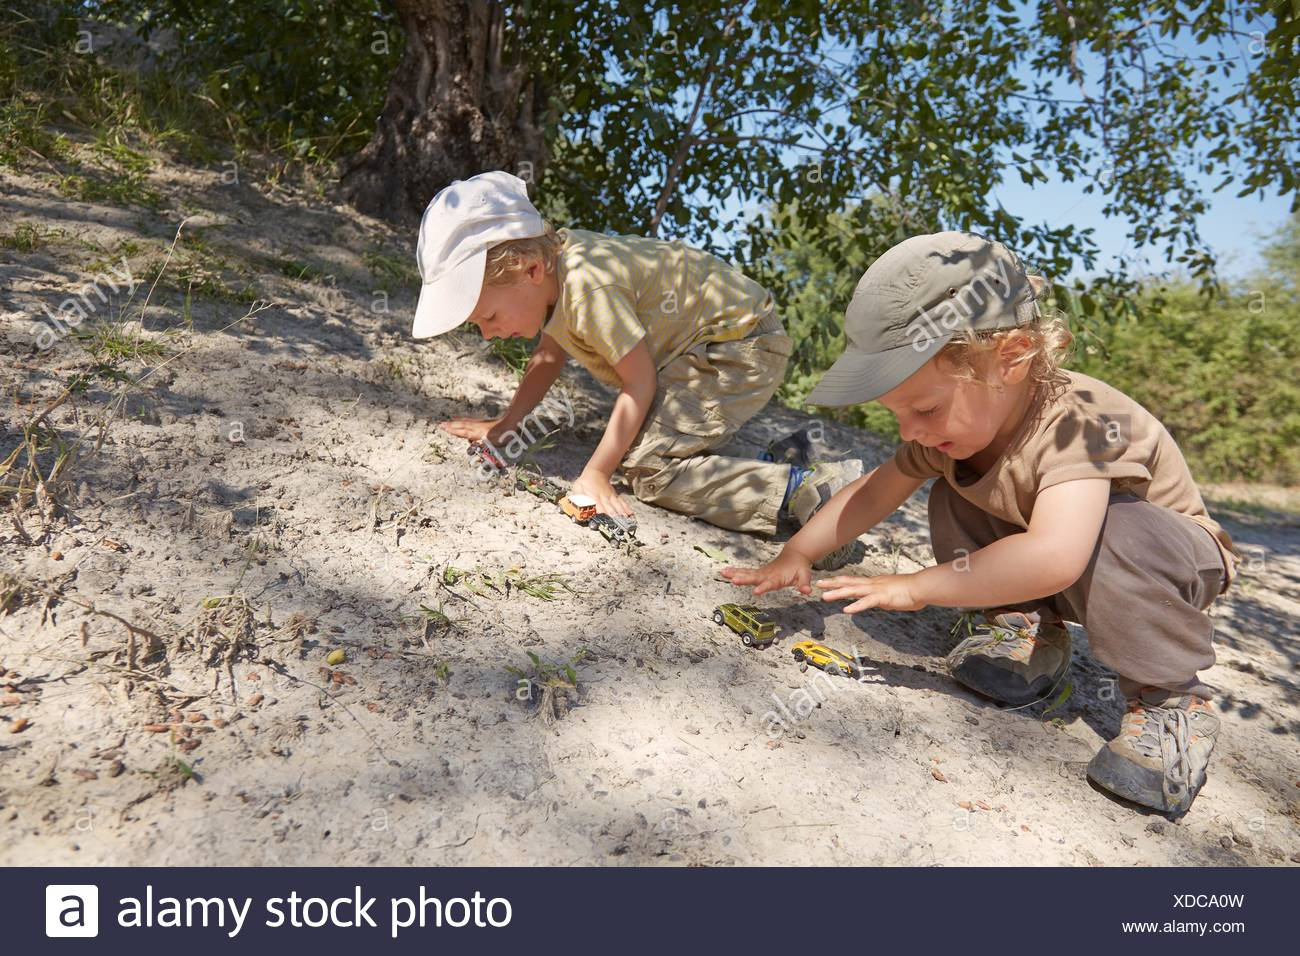 Two young boys, playing with toy cars on sand - Stock Image